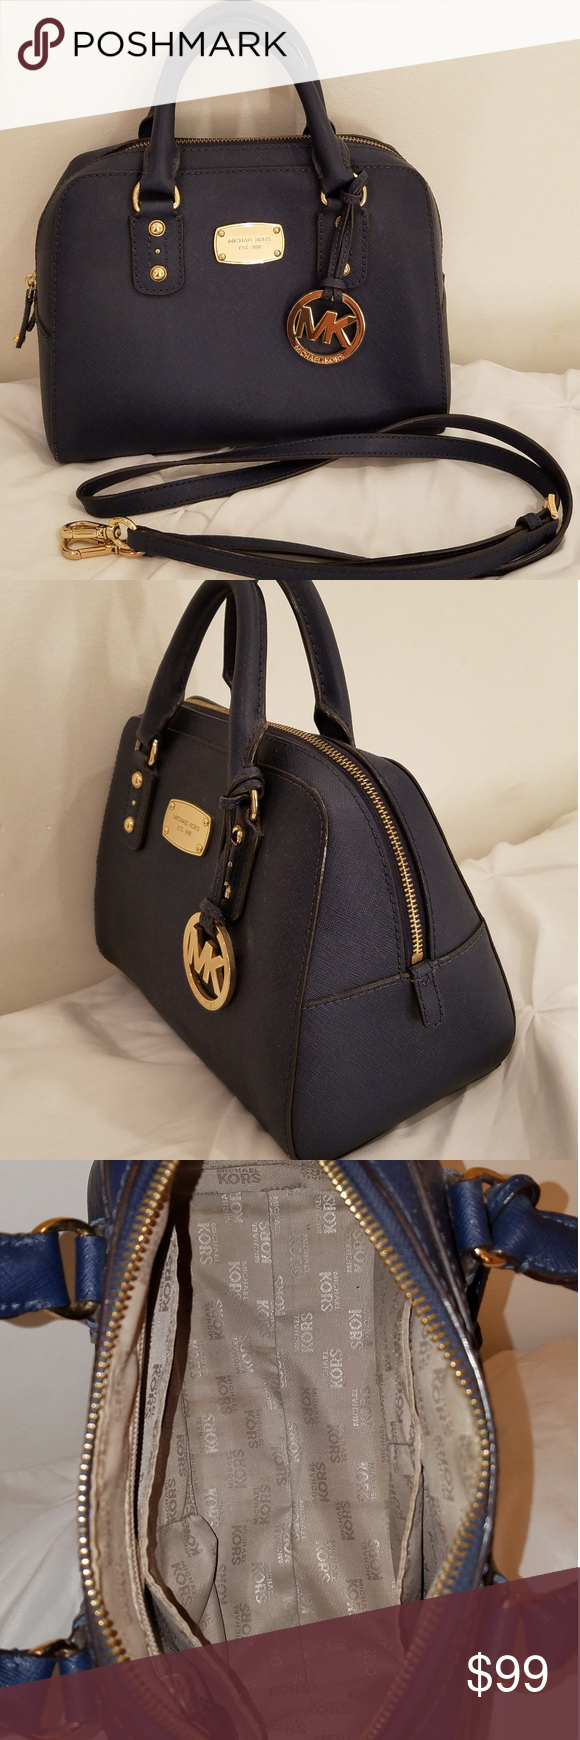 Michael Kors Small Saffiano Navy Blue/Gold Leather MK